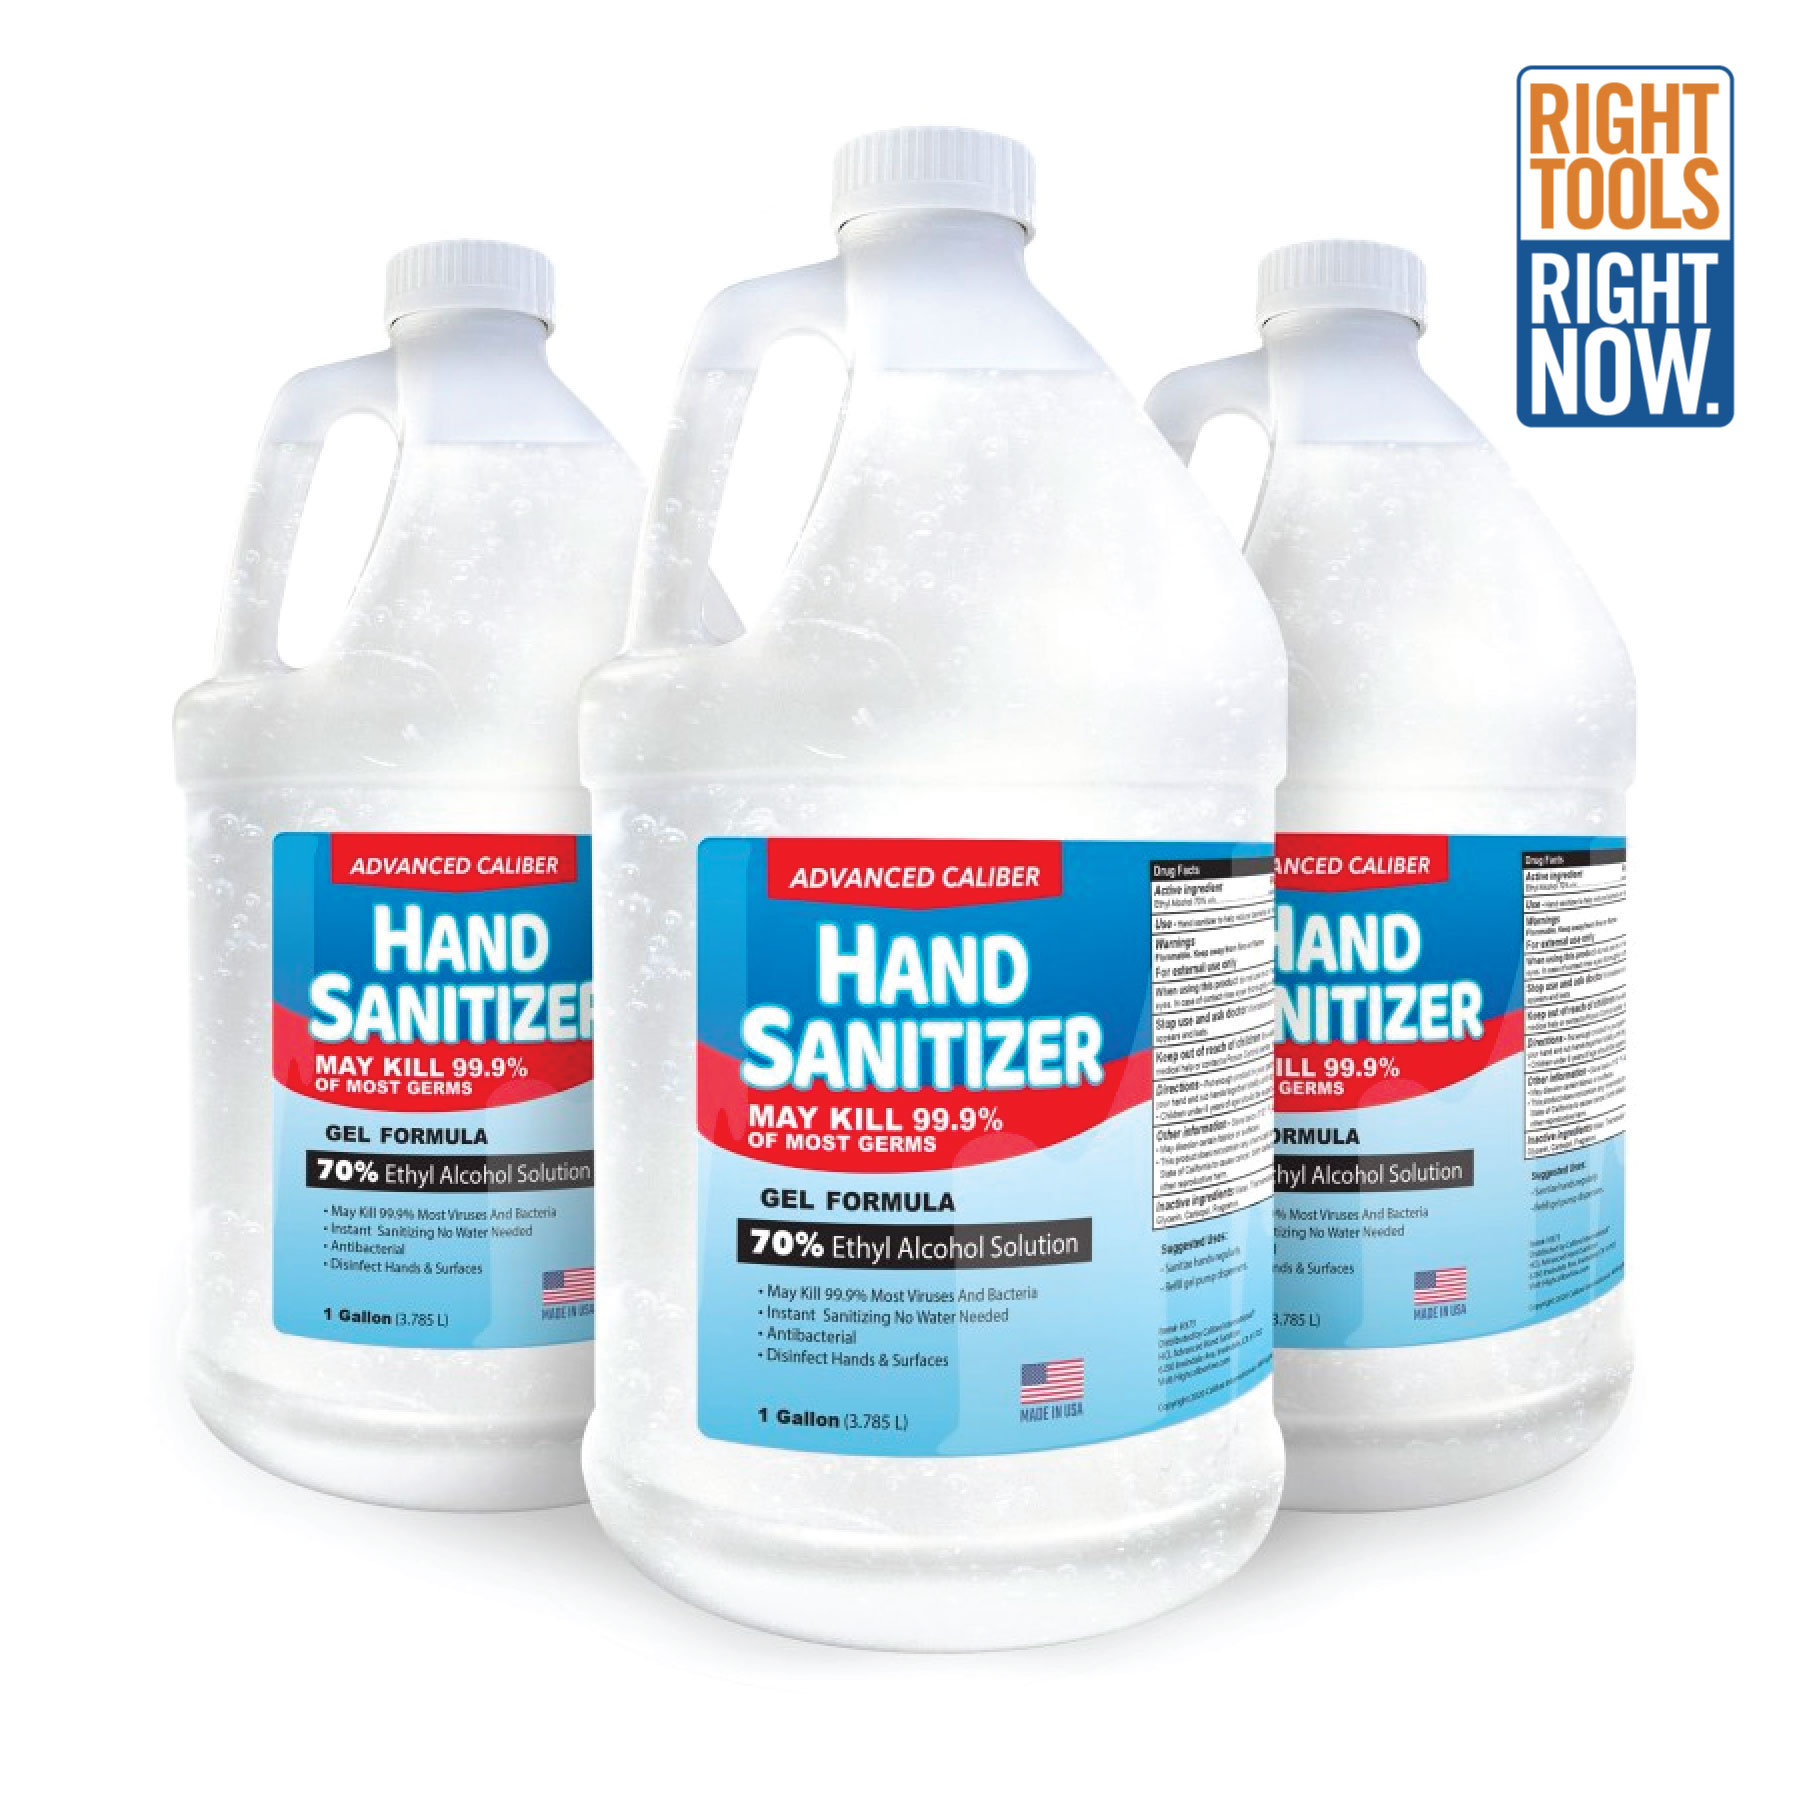 Special Order: Gallon of Hand Sanitizer COVID,COVID-19,SARS,Virus,Viruses,Coughs,Safety,Sanis,Wipes,Cleaners,Antibacterials,Screens,Shields,Sneeze,Clear